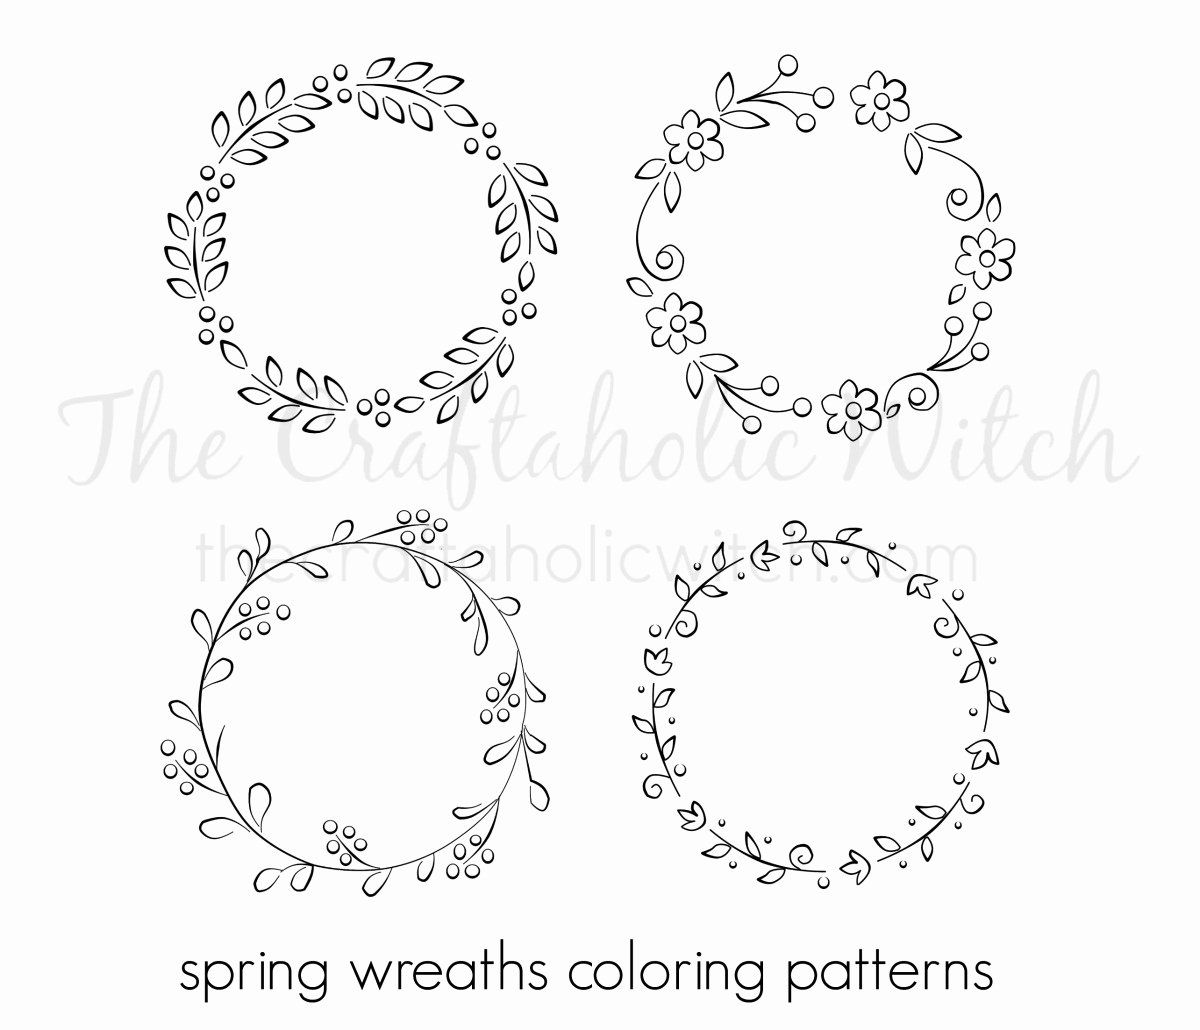 Flower Wreath Coloring Page Awesome Spring Wreath Coloring